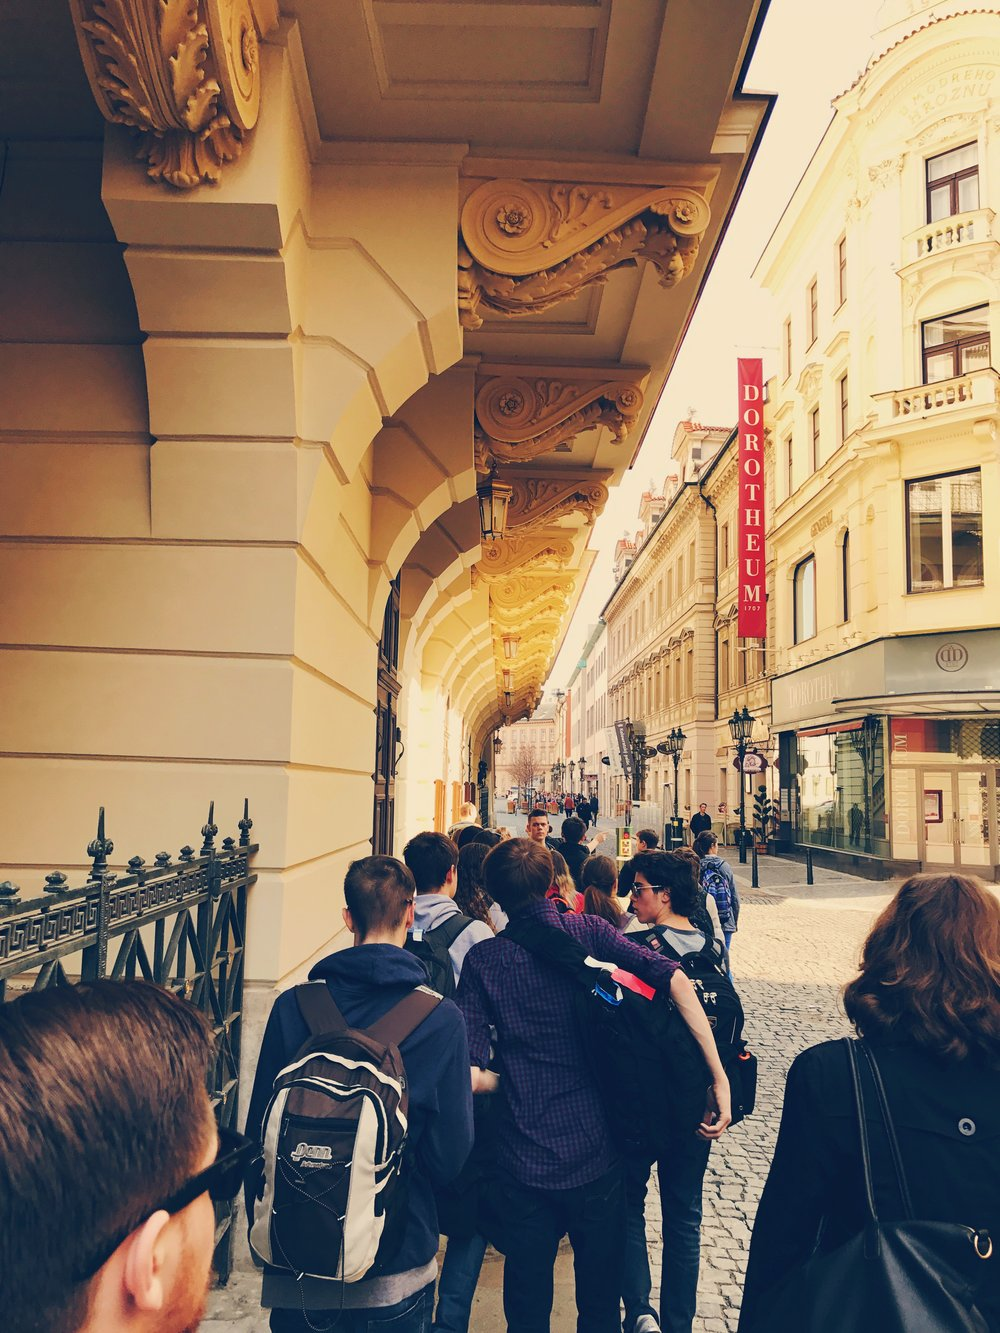 Our team travels through the streets of Prague